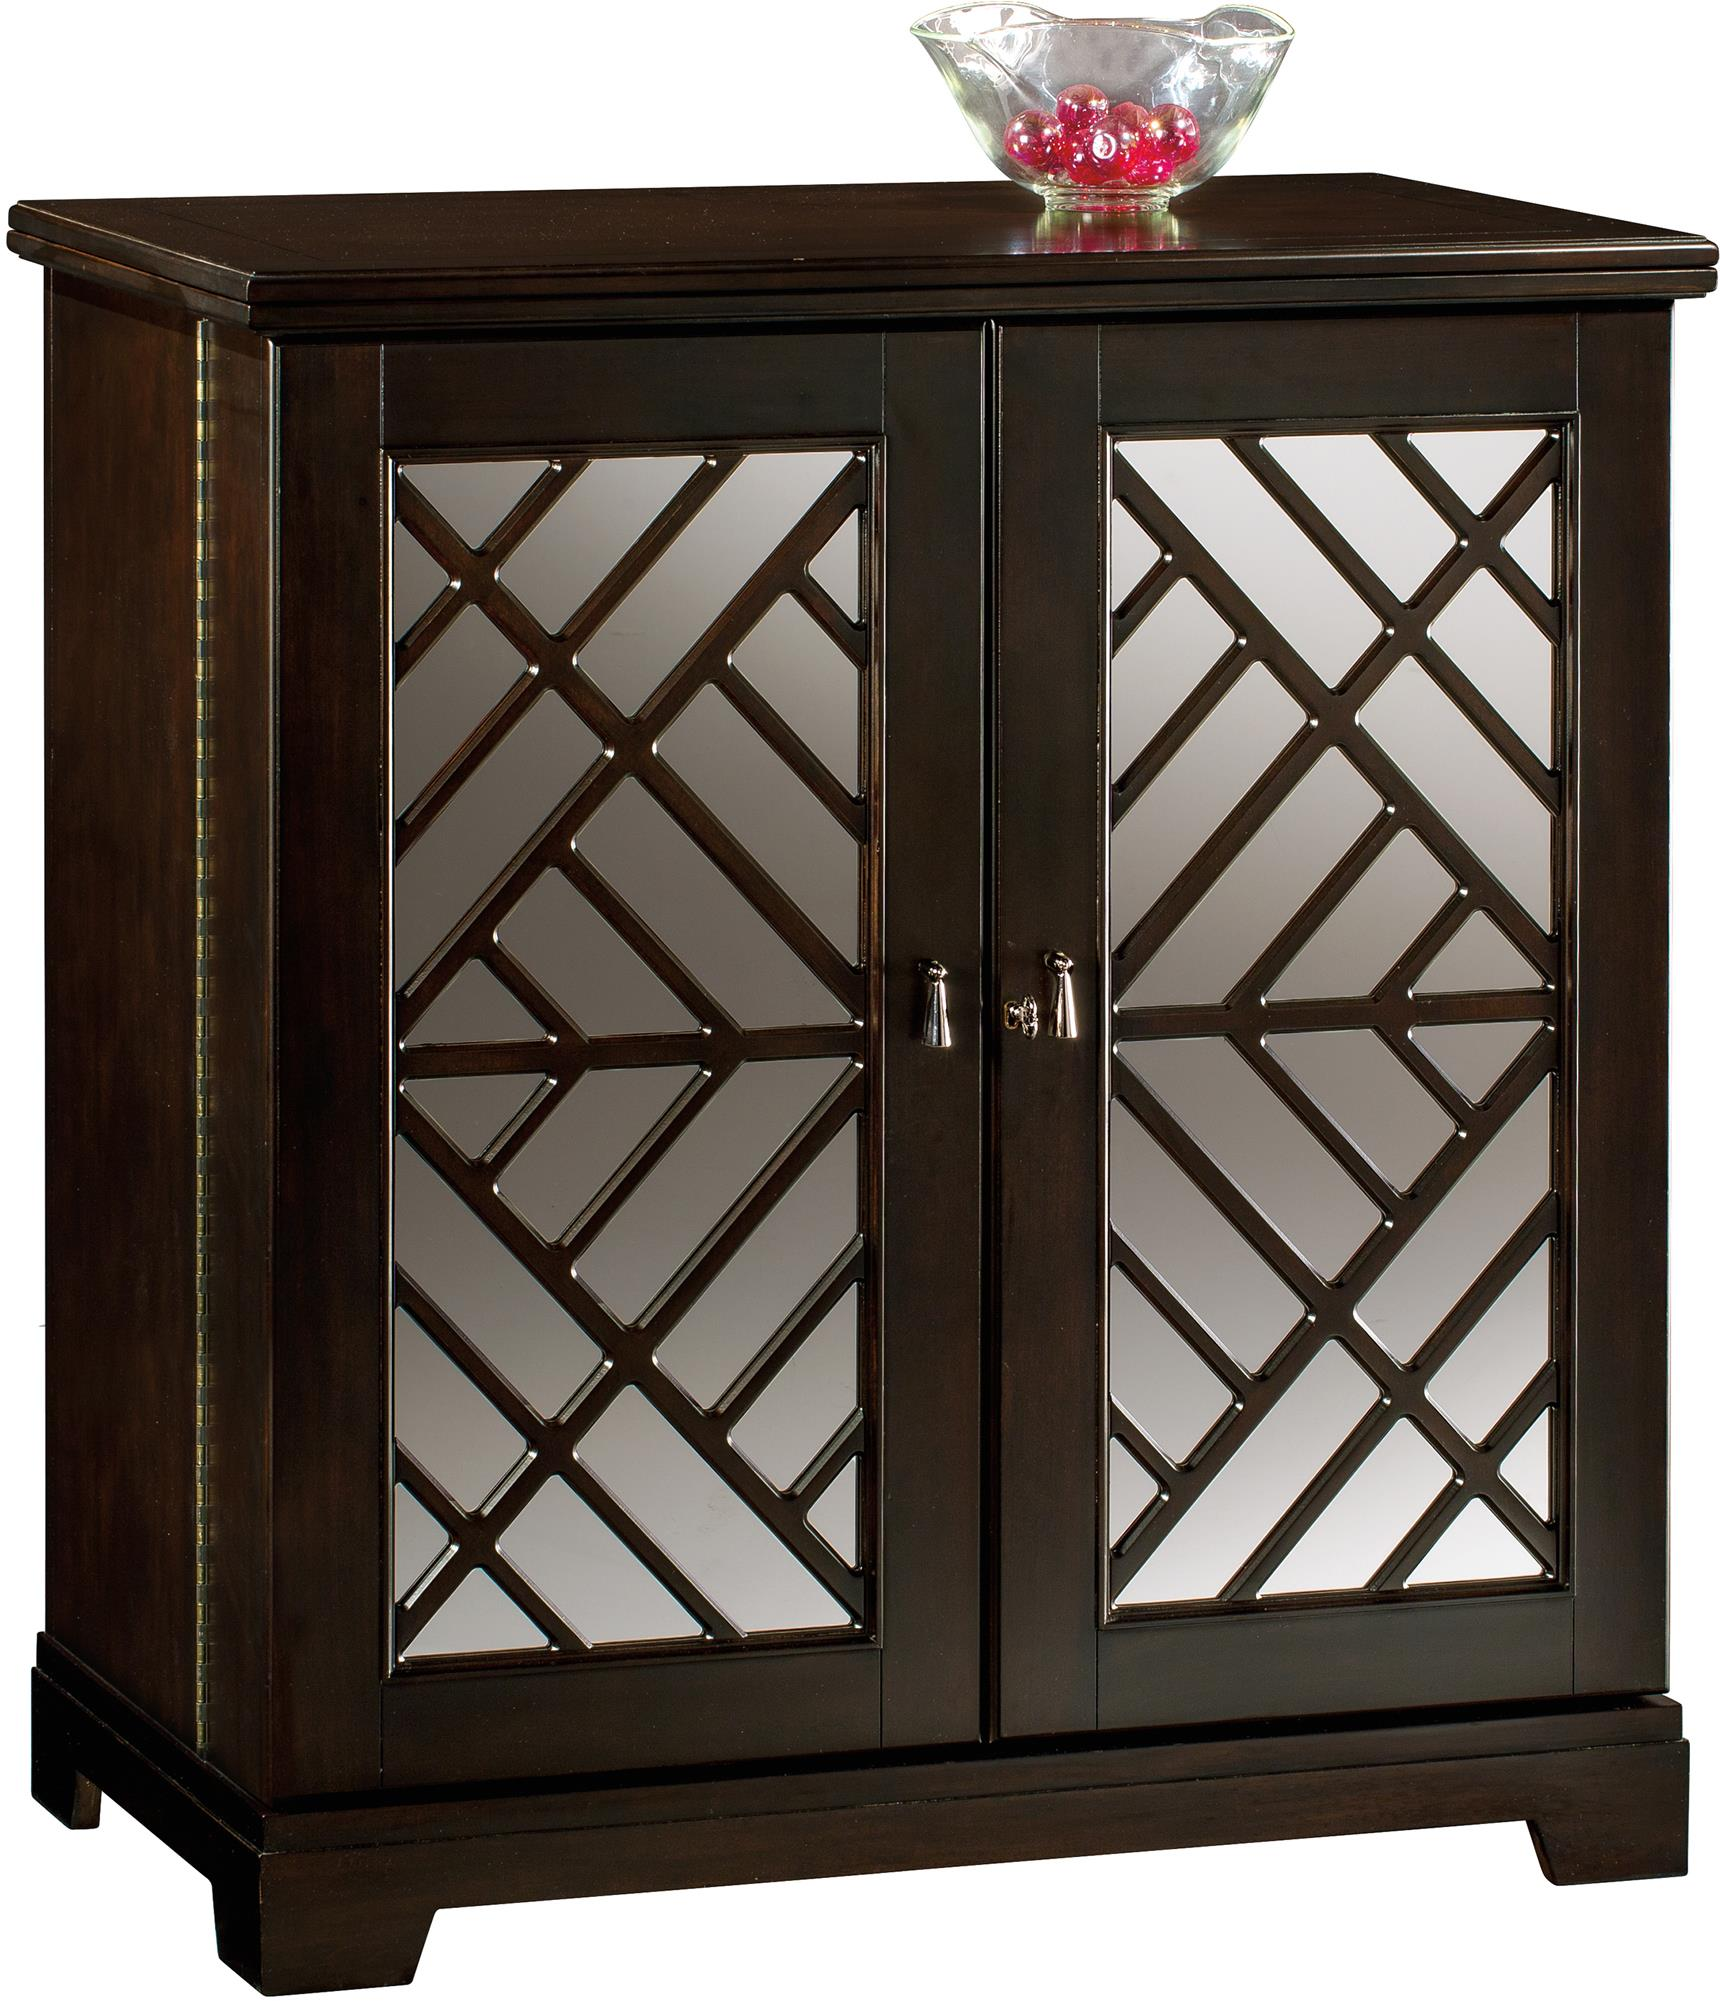 Wine & Bar Furnishings Cabinet by Howard Miller at HomeWorld Furniture